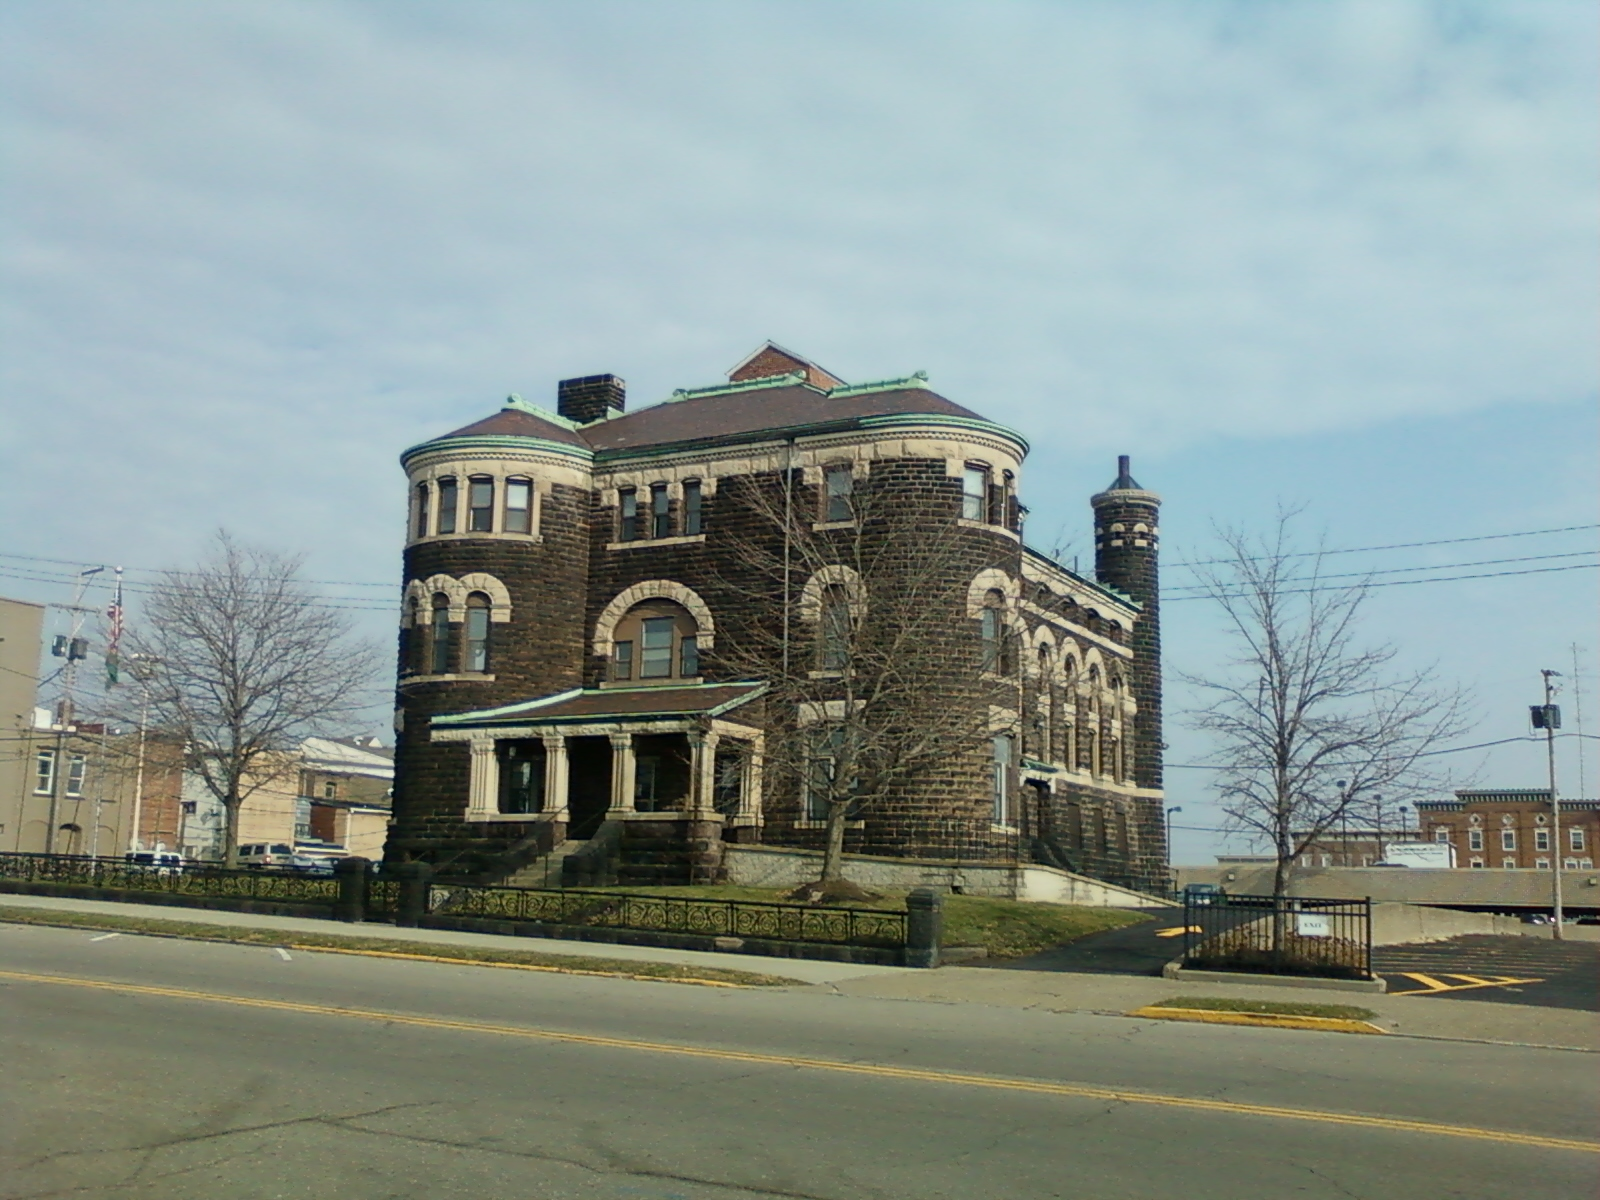 street view of the Licking County Jail from 1889-1987